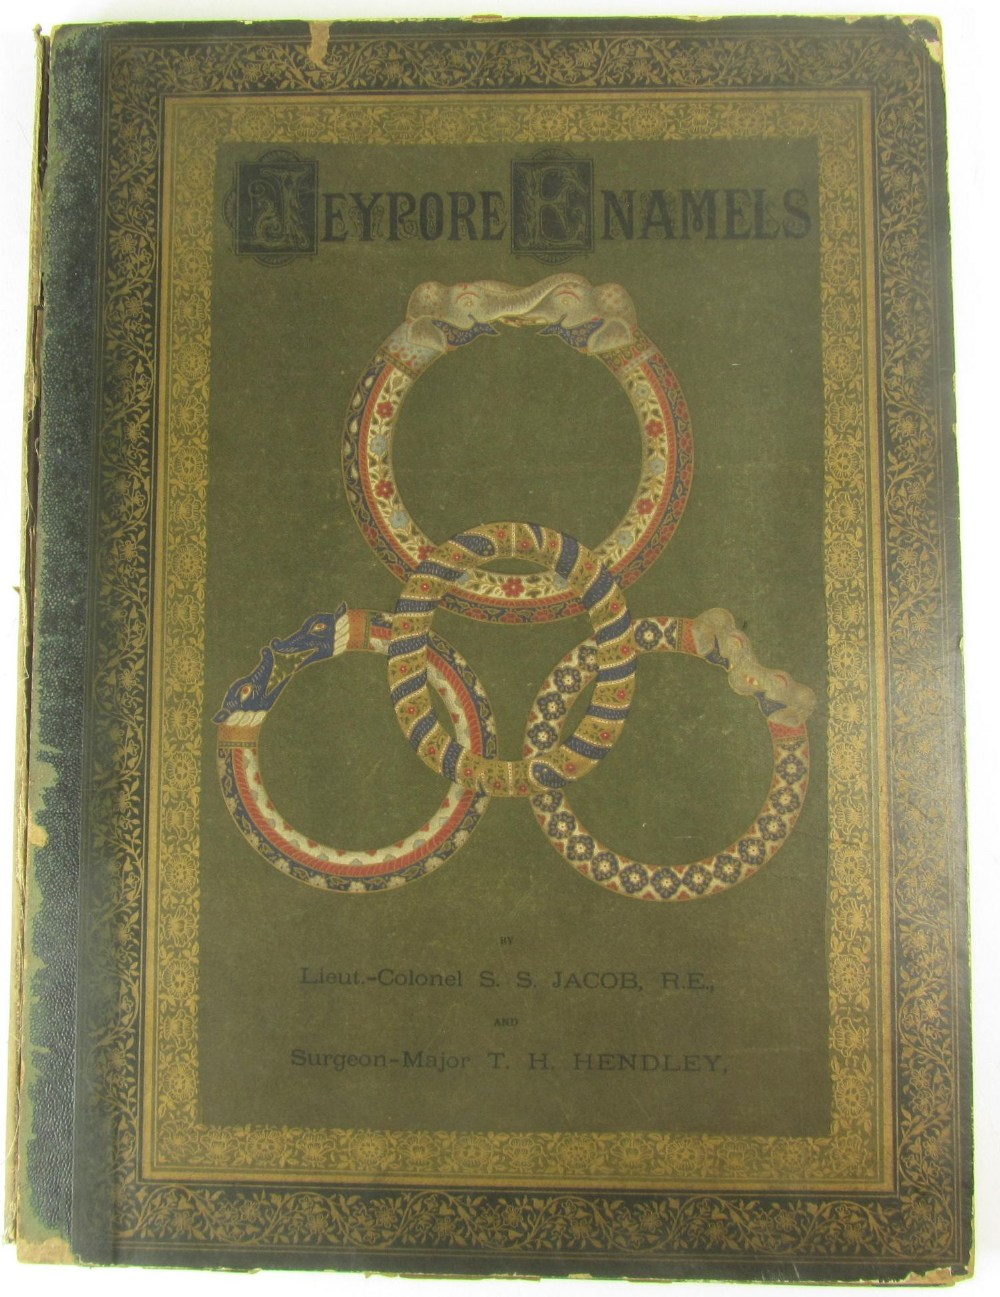 Jacob, S.S. and T.H. Hendley  Jeypore enamels. London: W. Griggs, 1886. Folio, 28 chromolithographed - Image 7 of 7